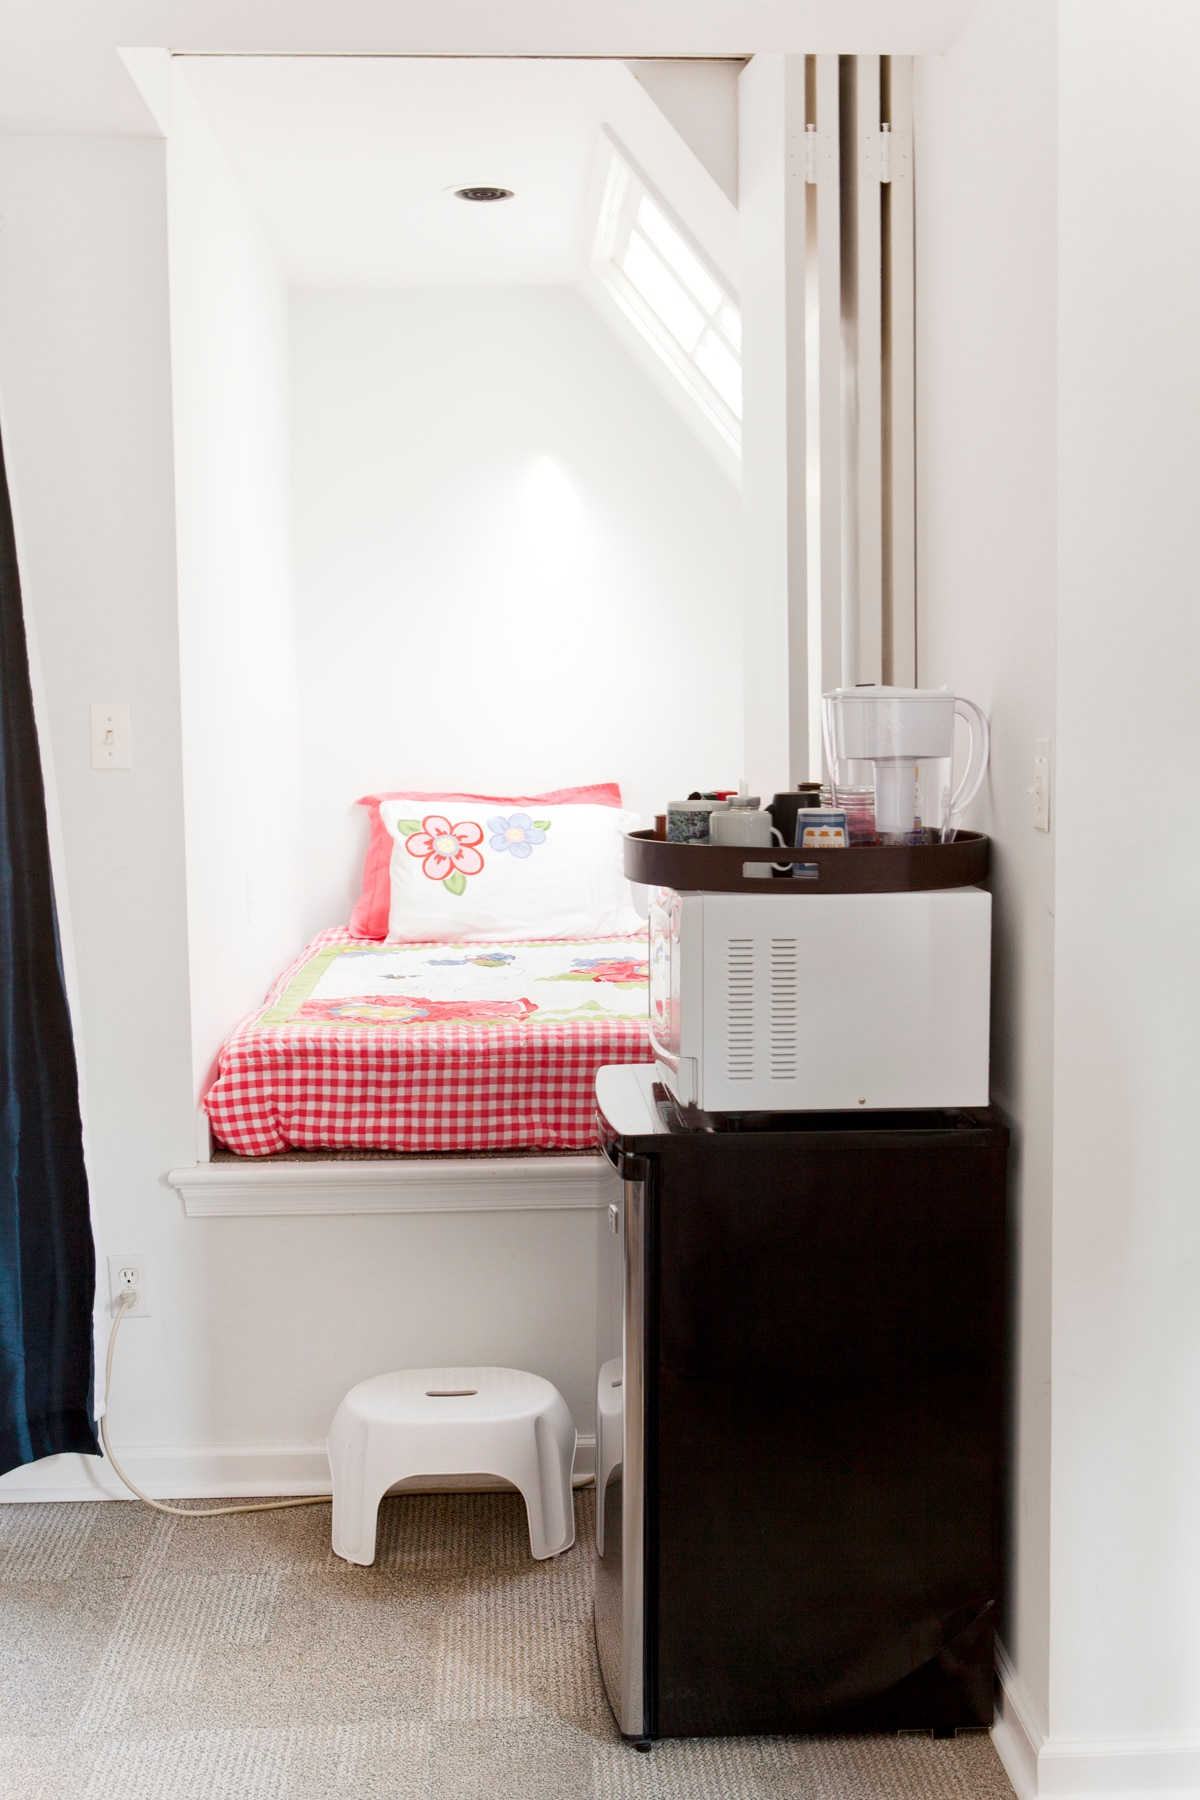 Step-up alcove sleeps one. (Kids love it!)